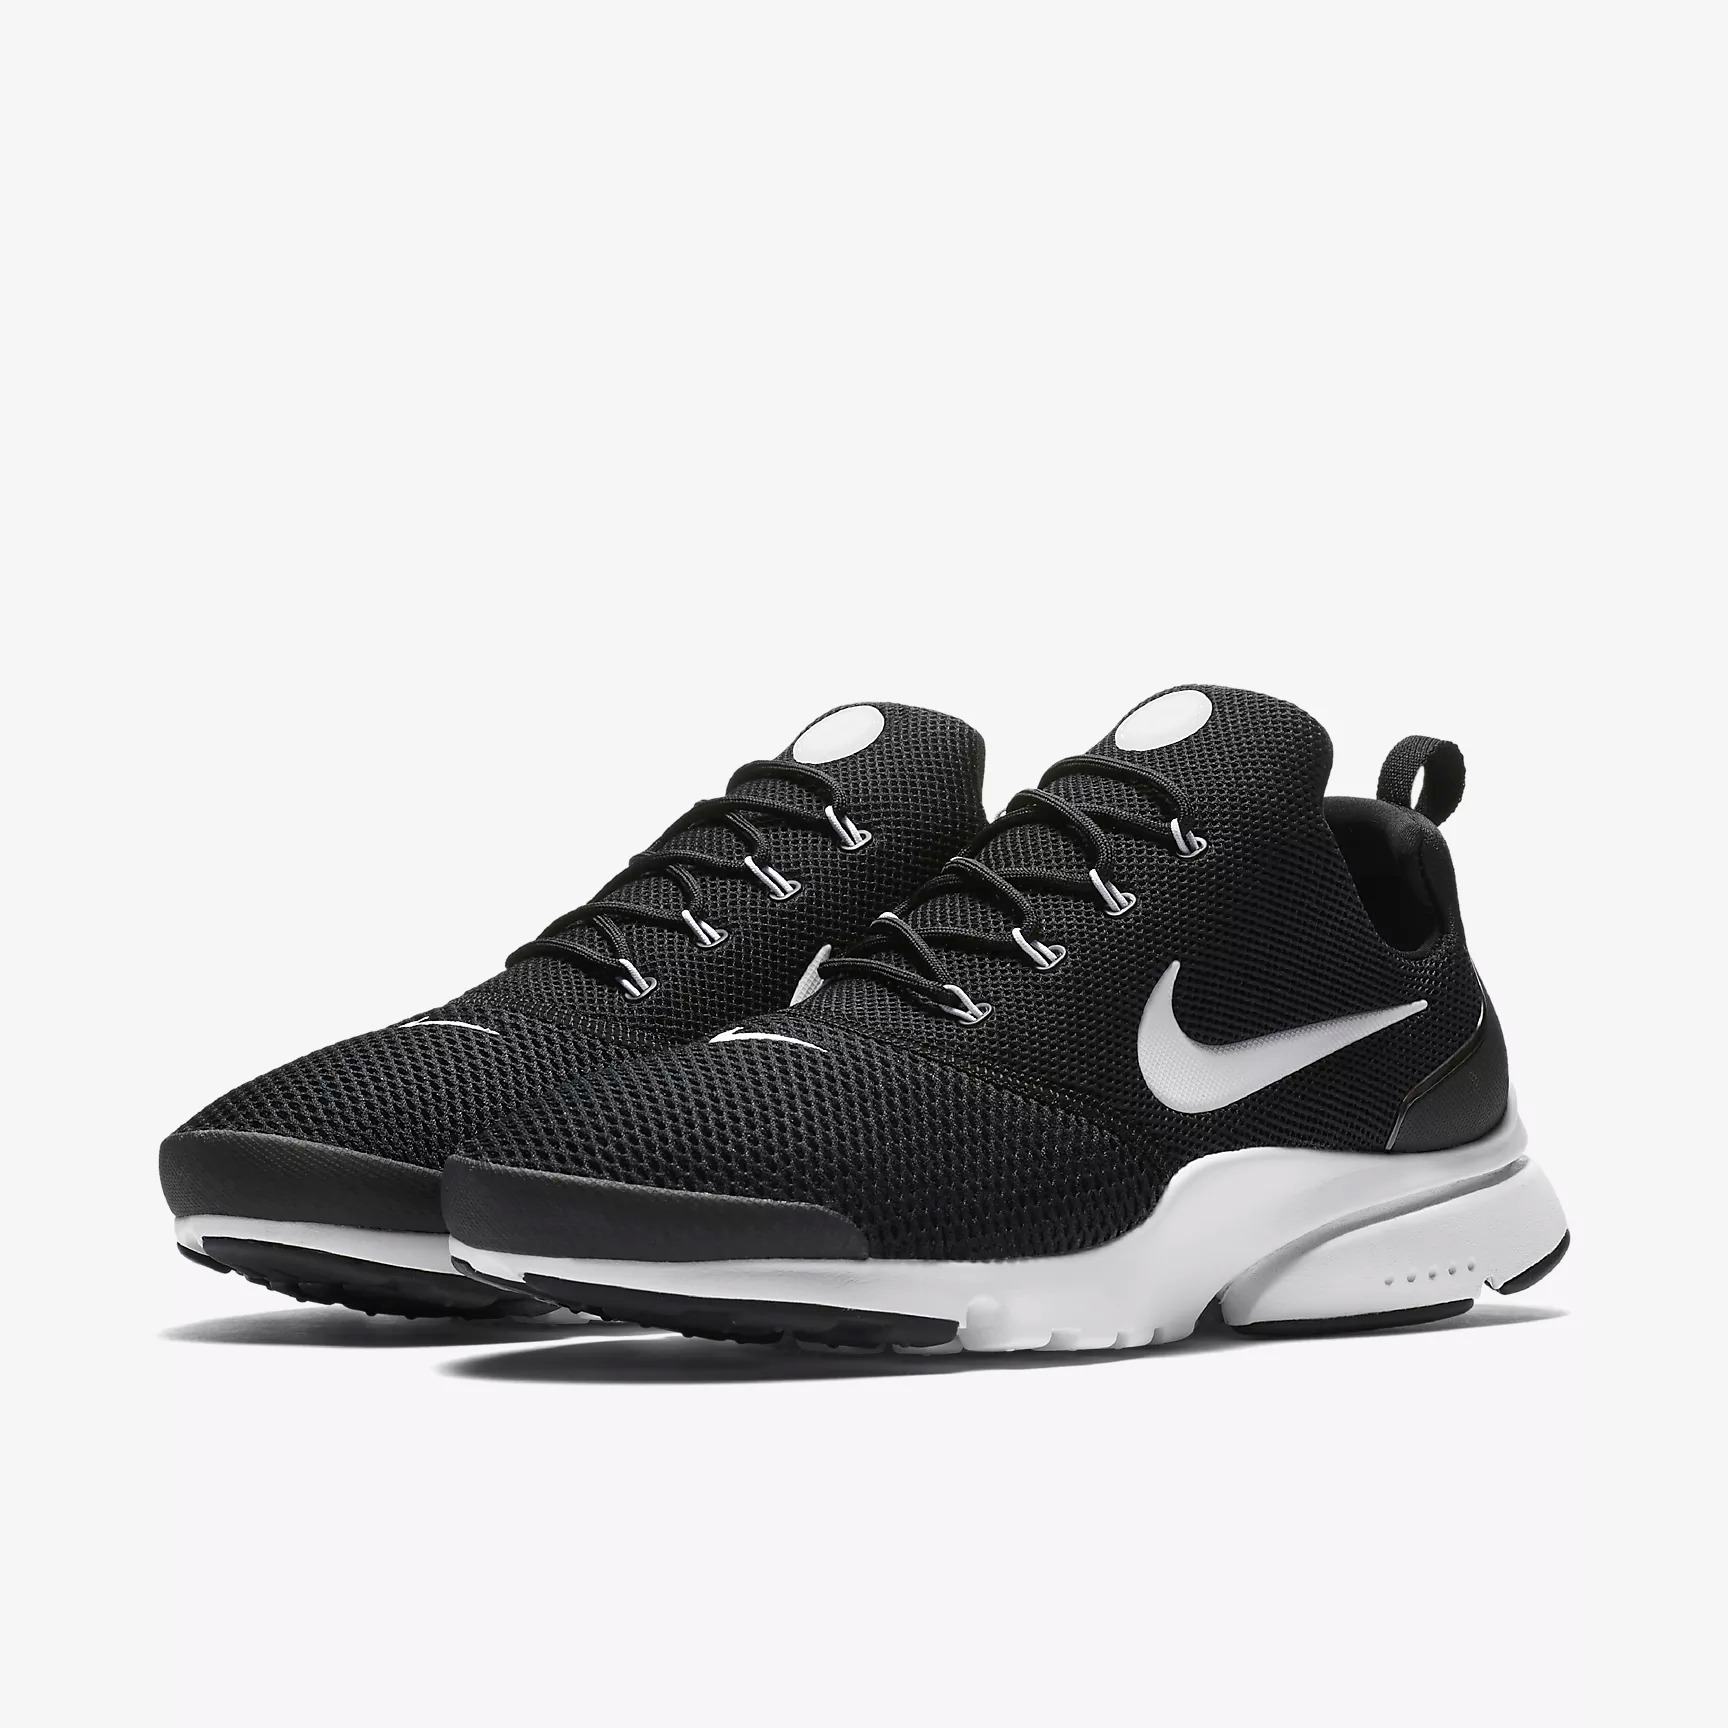 nike presto fly sneakers sport shoes athletic shoes and. Black Bedroom Furniture Sets. Home Design Ideas